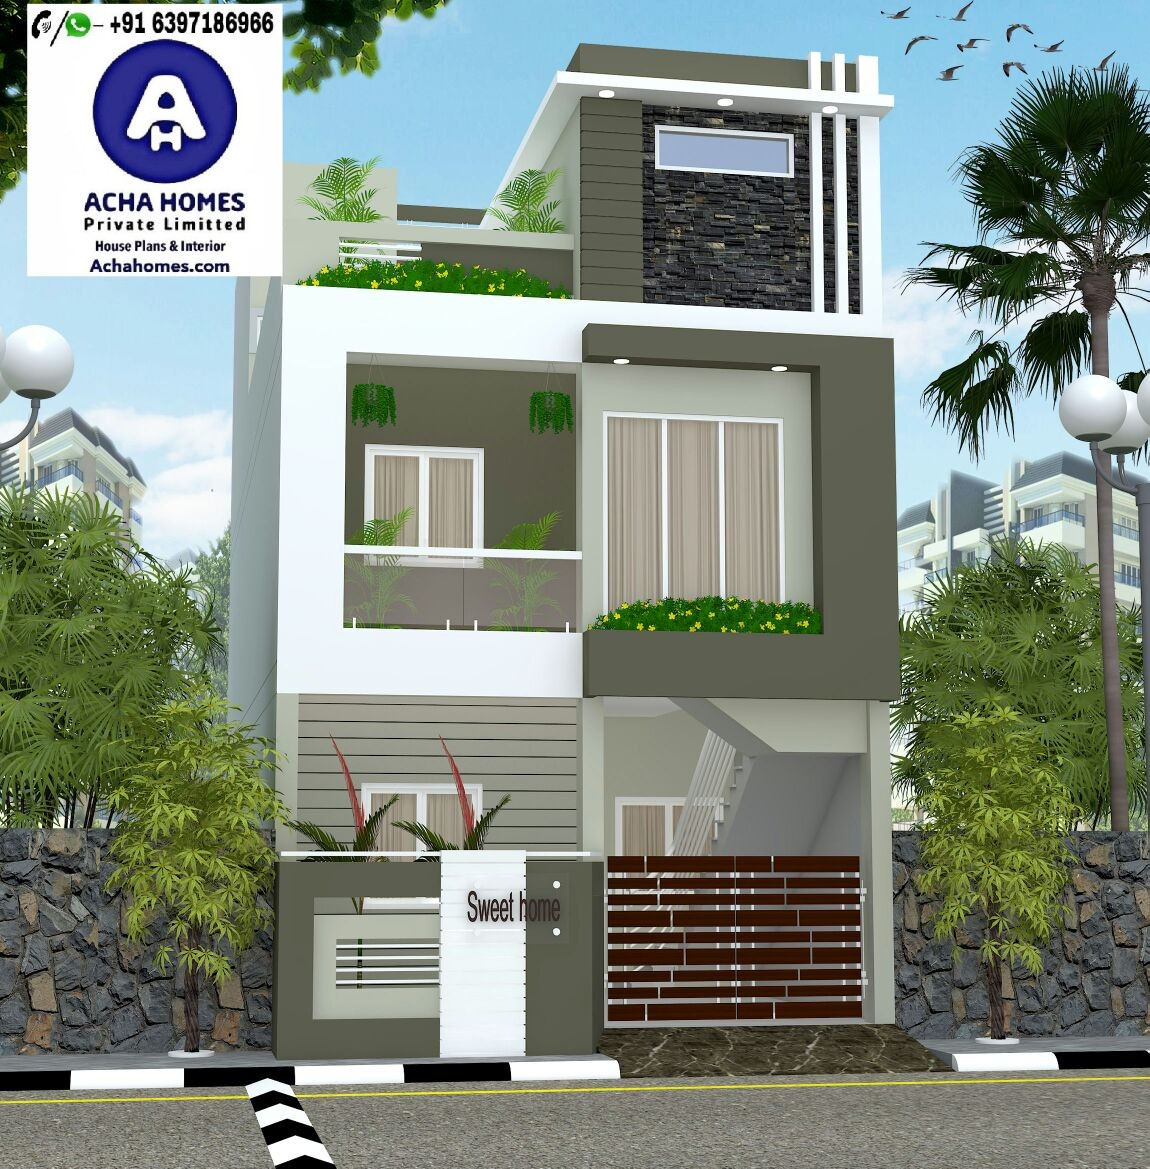 25 FEET BY 33 FEET PLOT Home design with 3 bedrooms